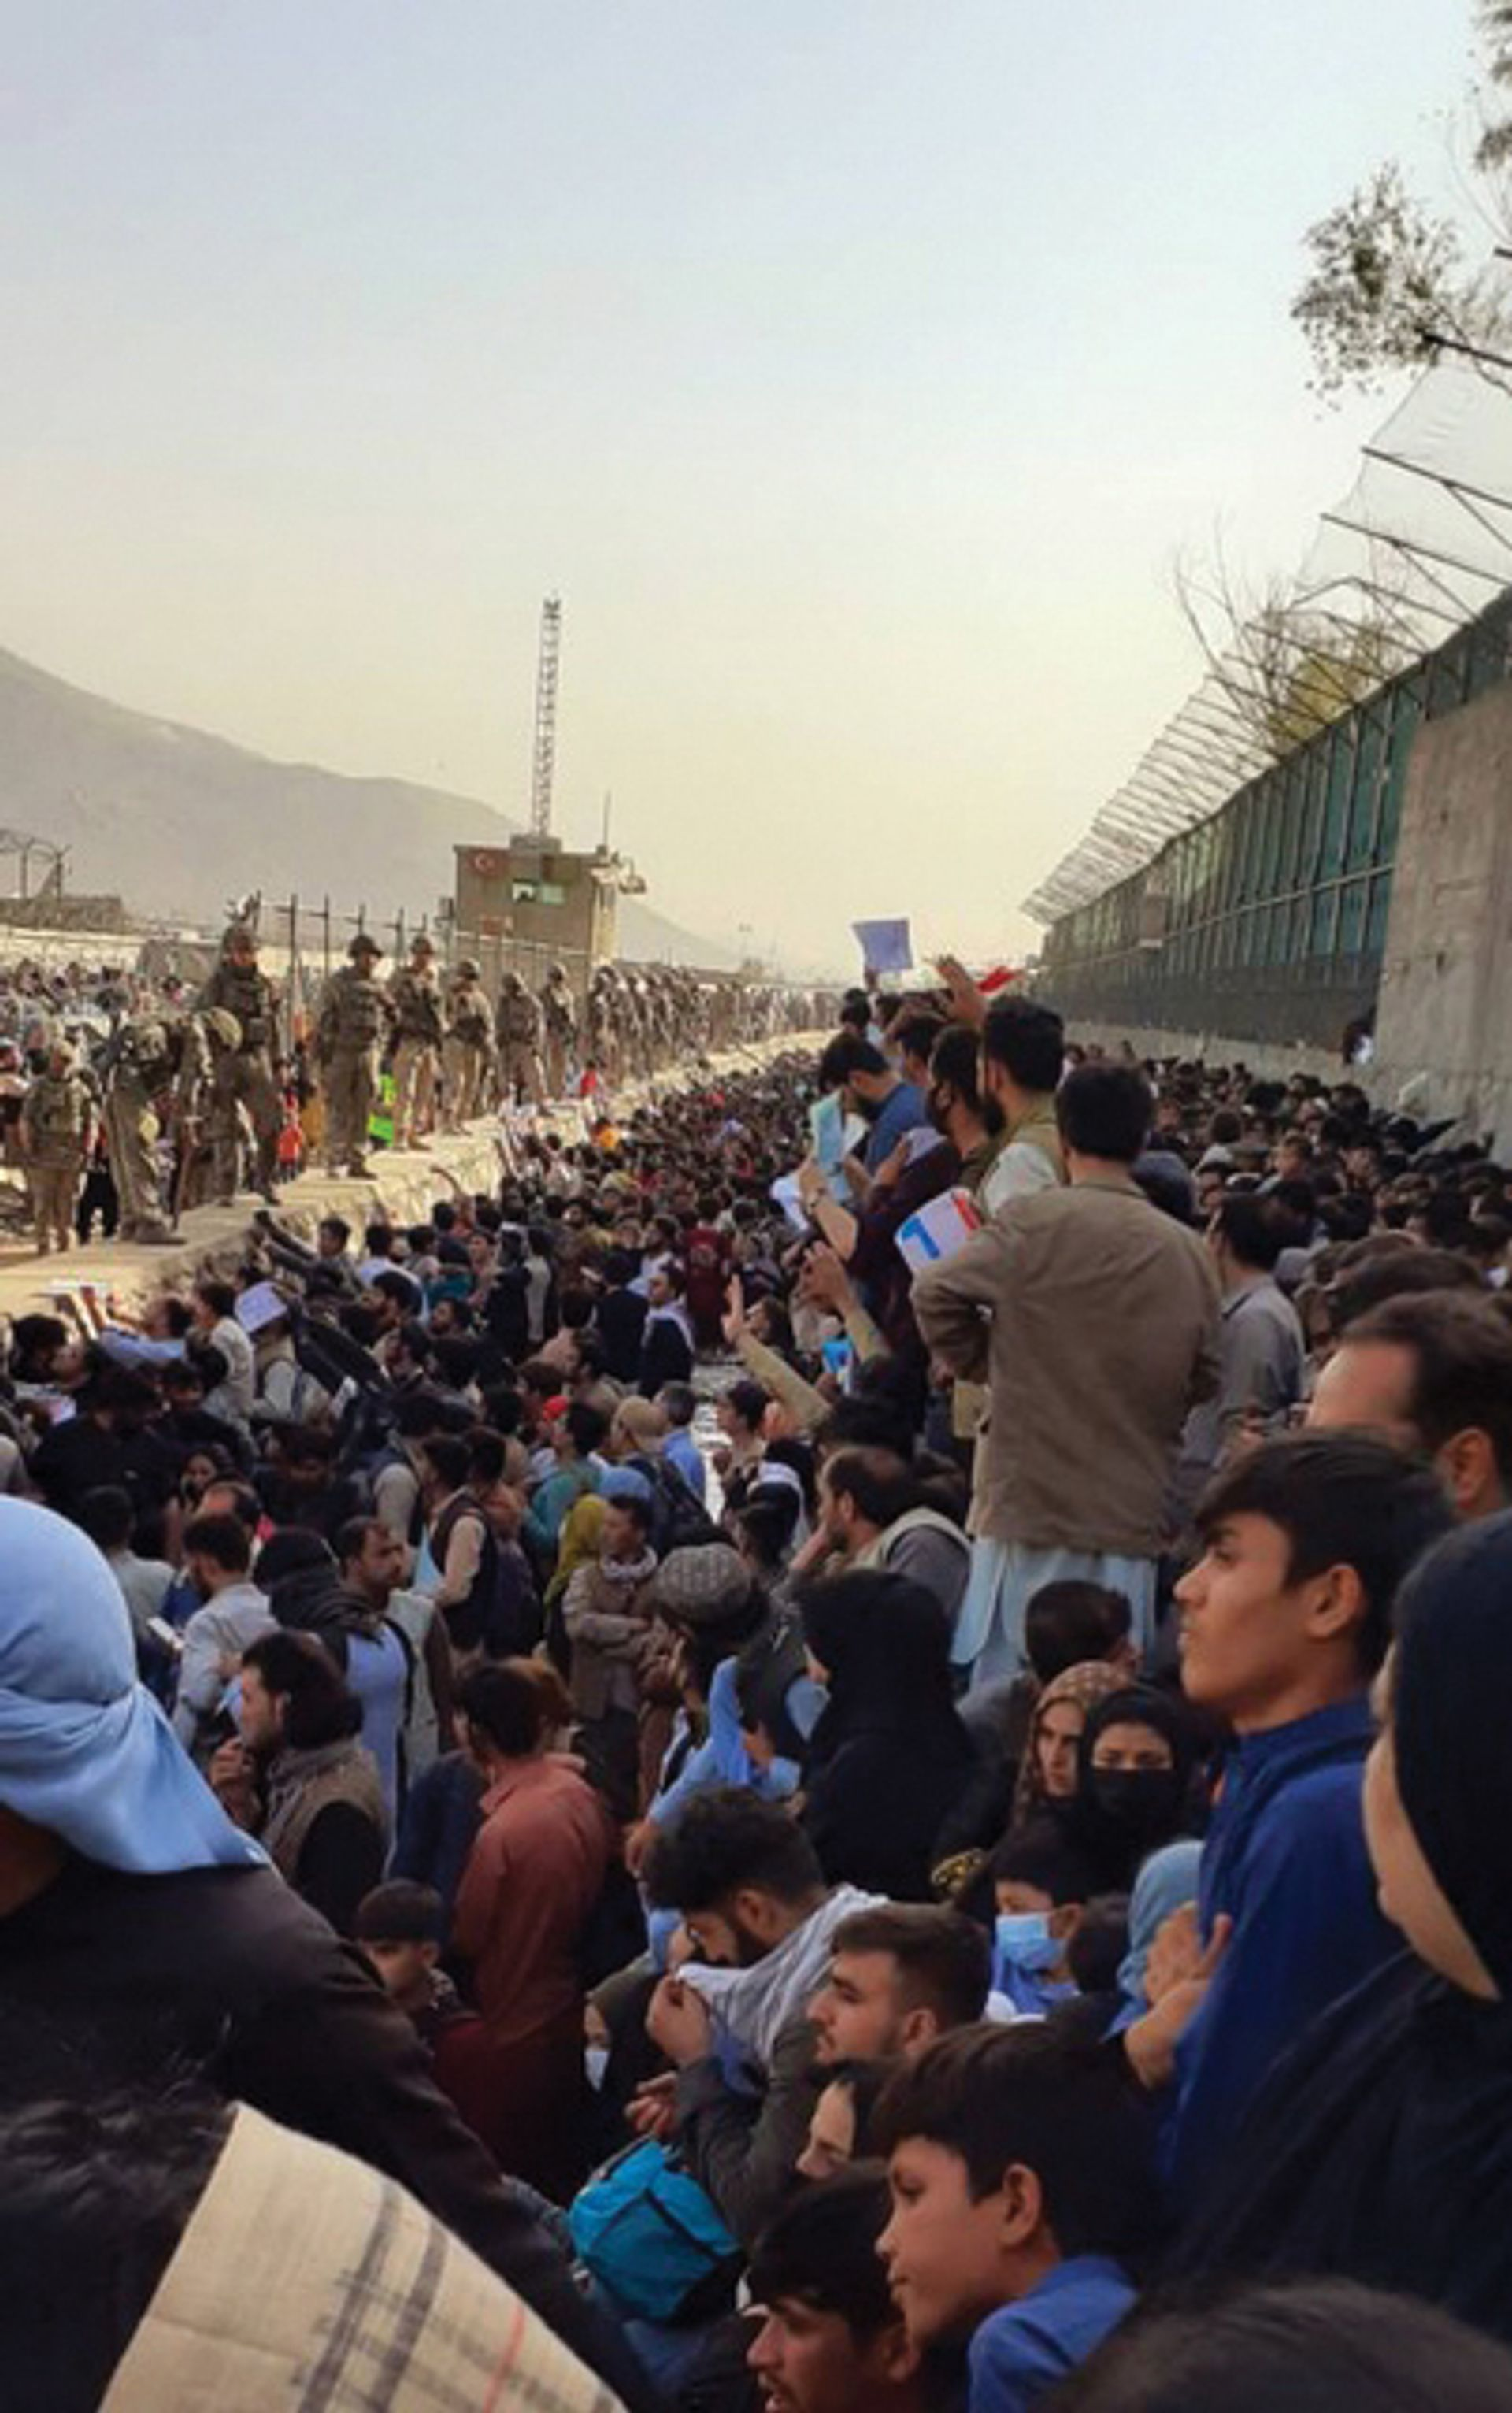 The crowds at Kabul airport's Abbey Gate full of people hoping to board one of the evacuation flights last month